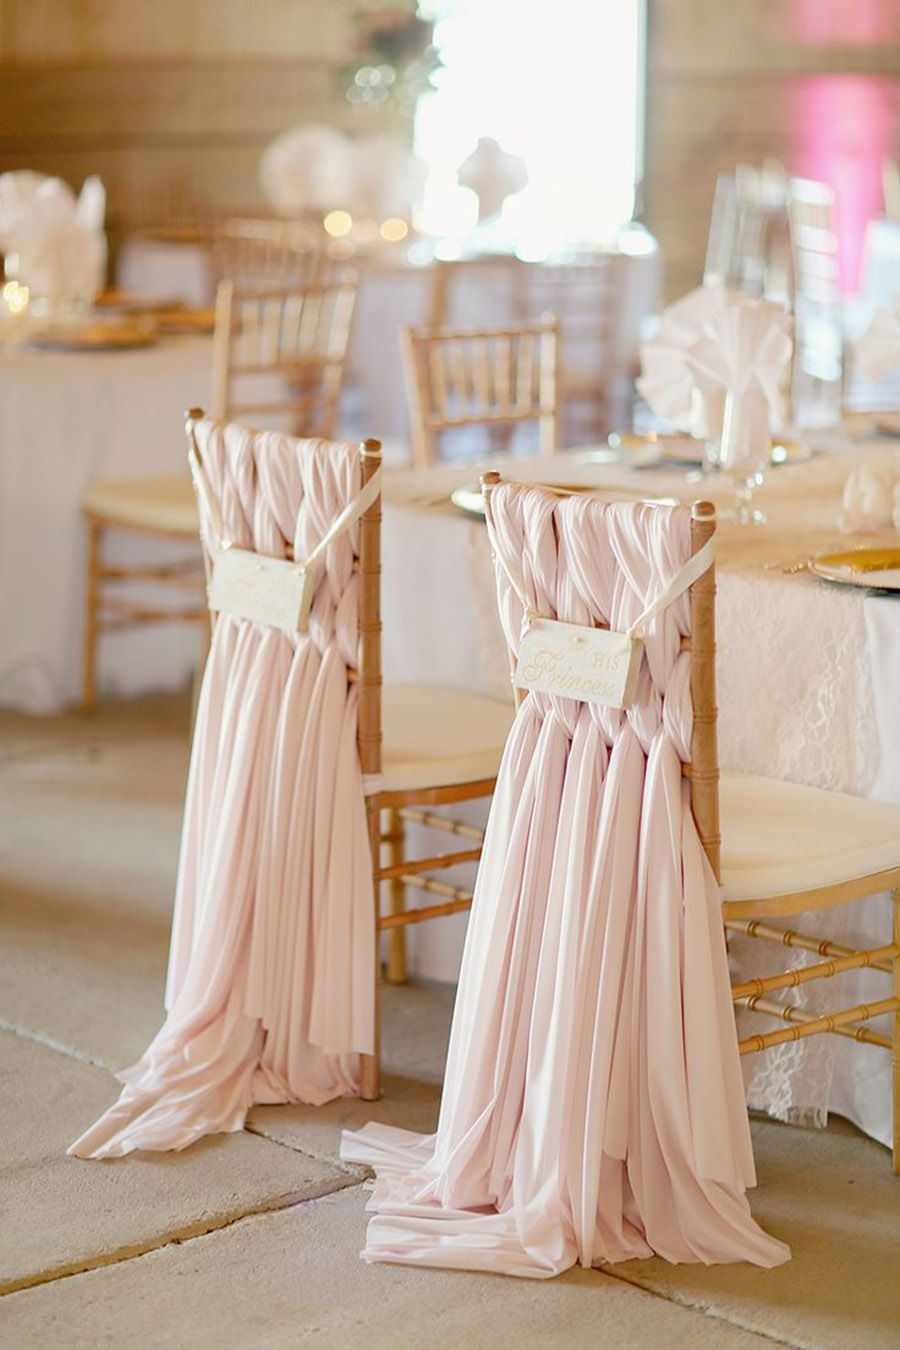 7 Ways to Transform a Wedding Space and Add a Touch of Luxury